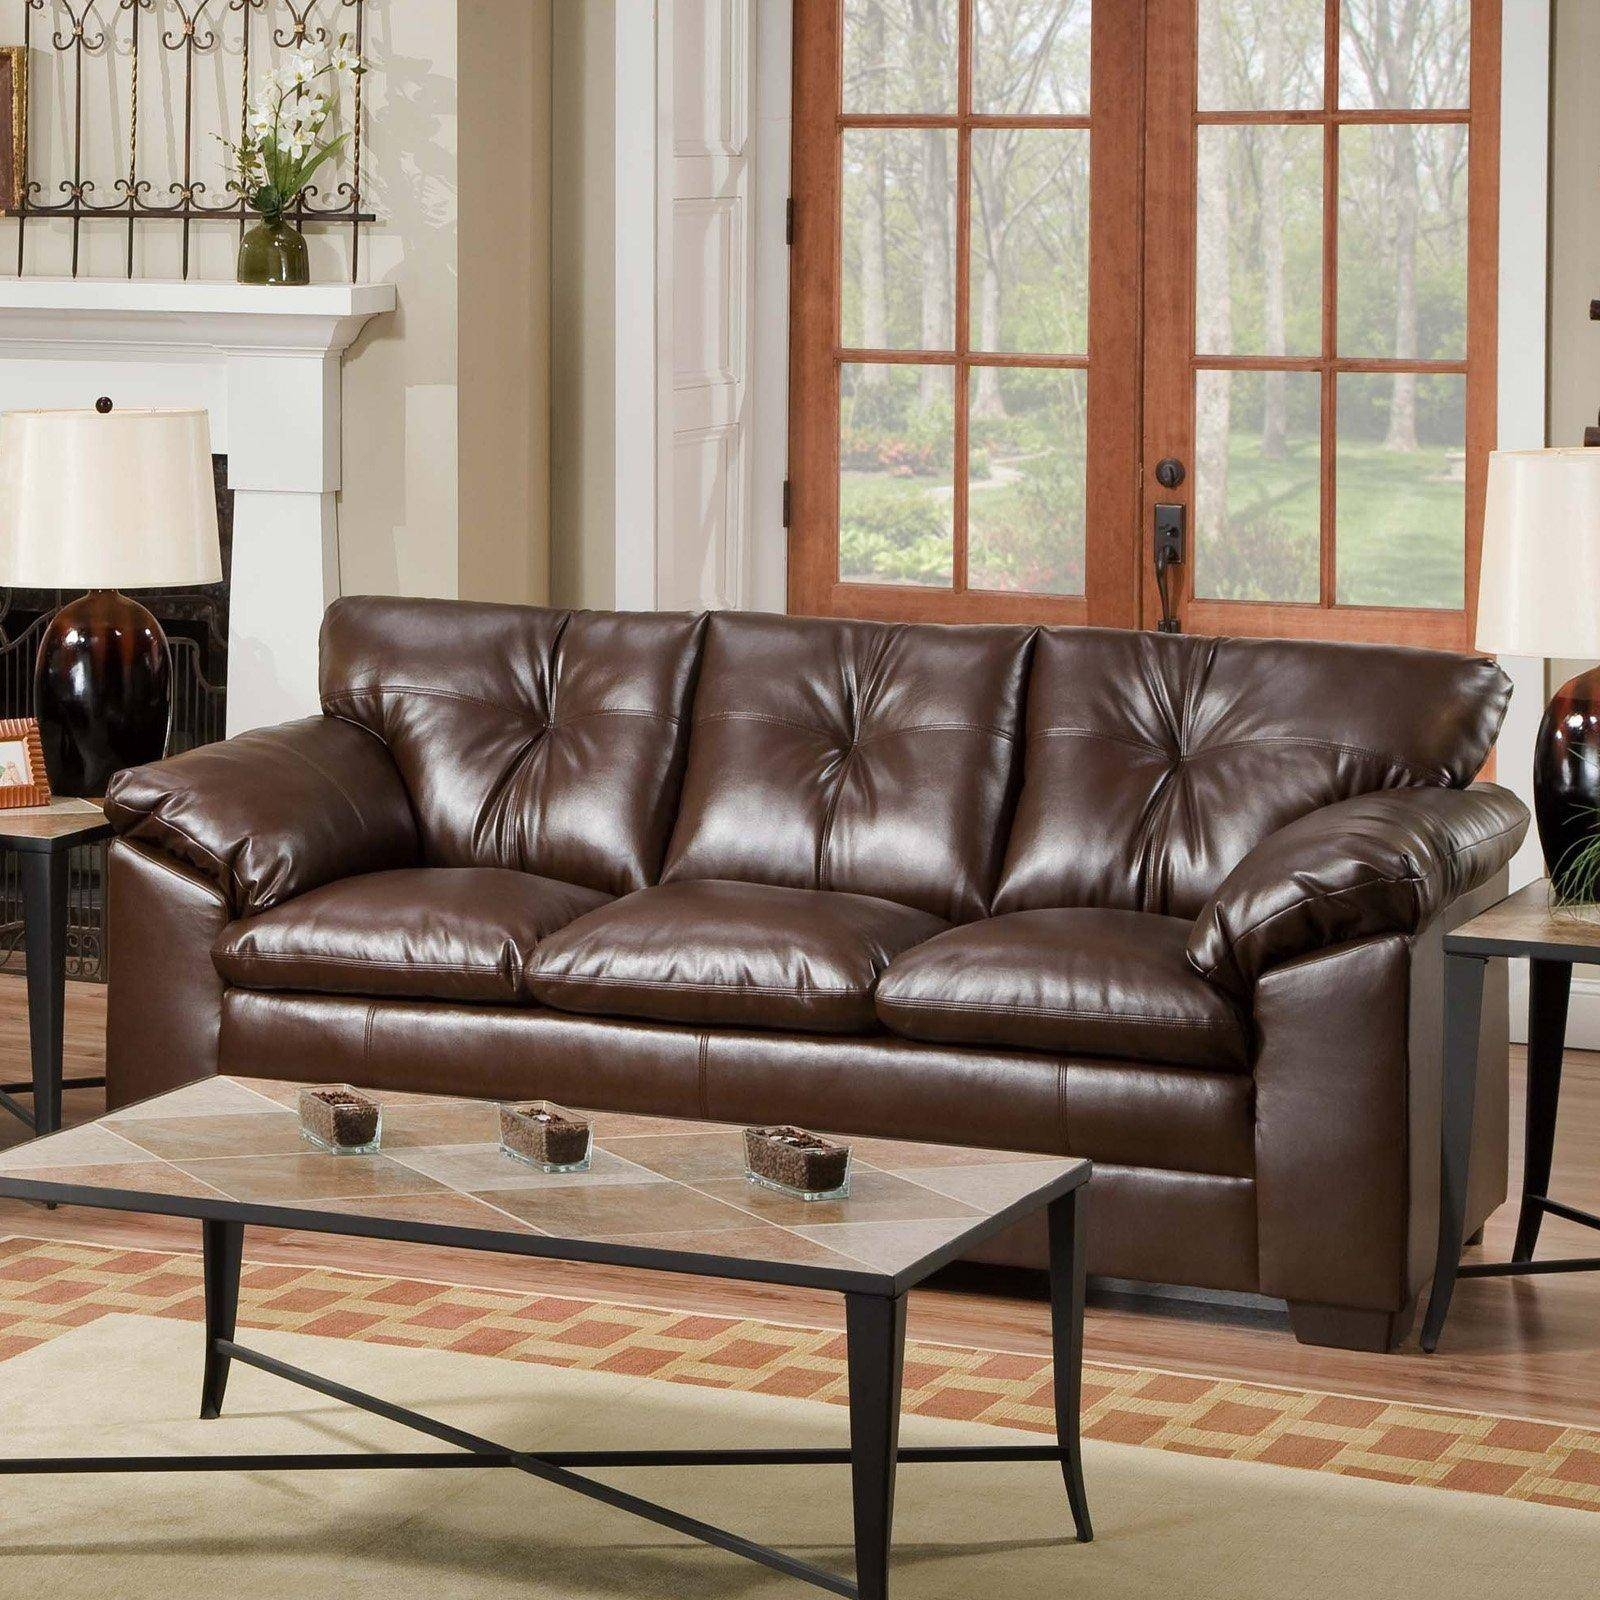 20 Ideas Of Simmons Bonded Leather Sofas | Sofa Ideas with Simmons Bonded Leather Sofas (Image 5 of 15)